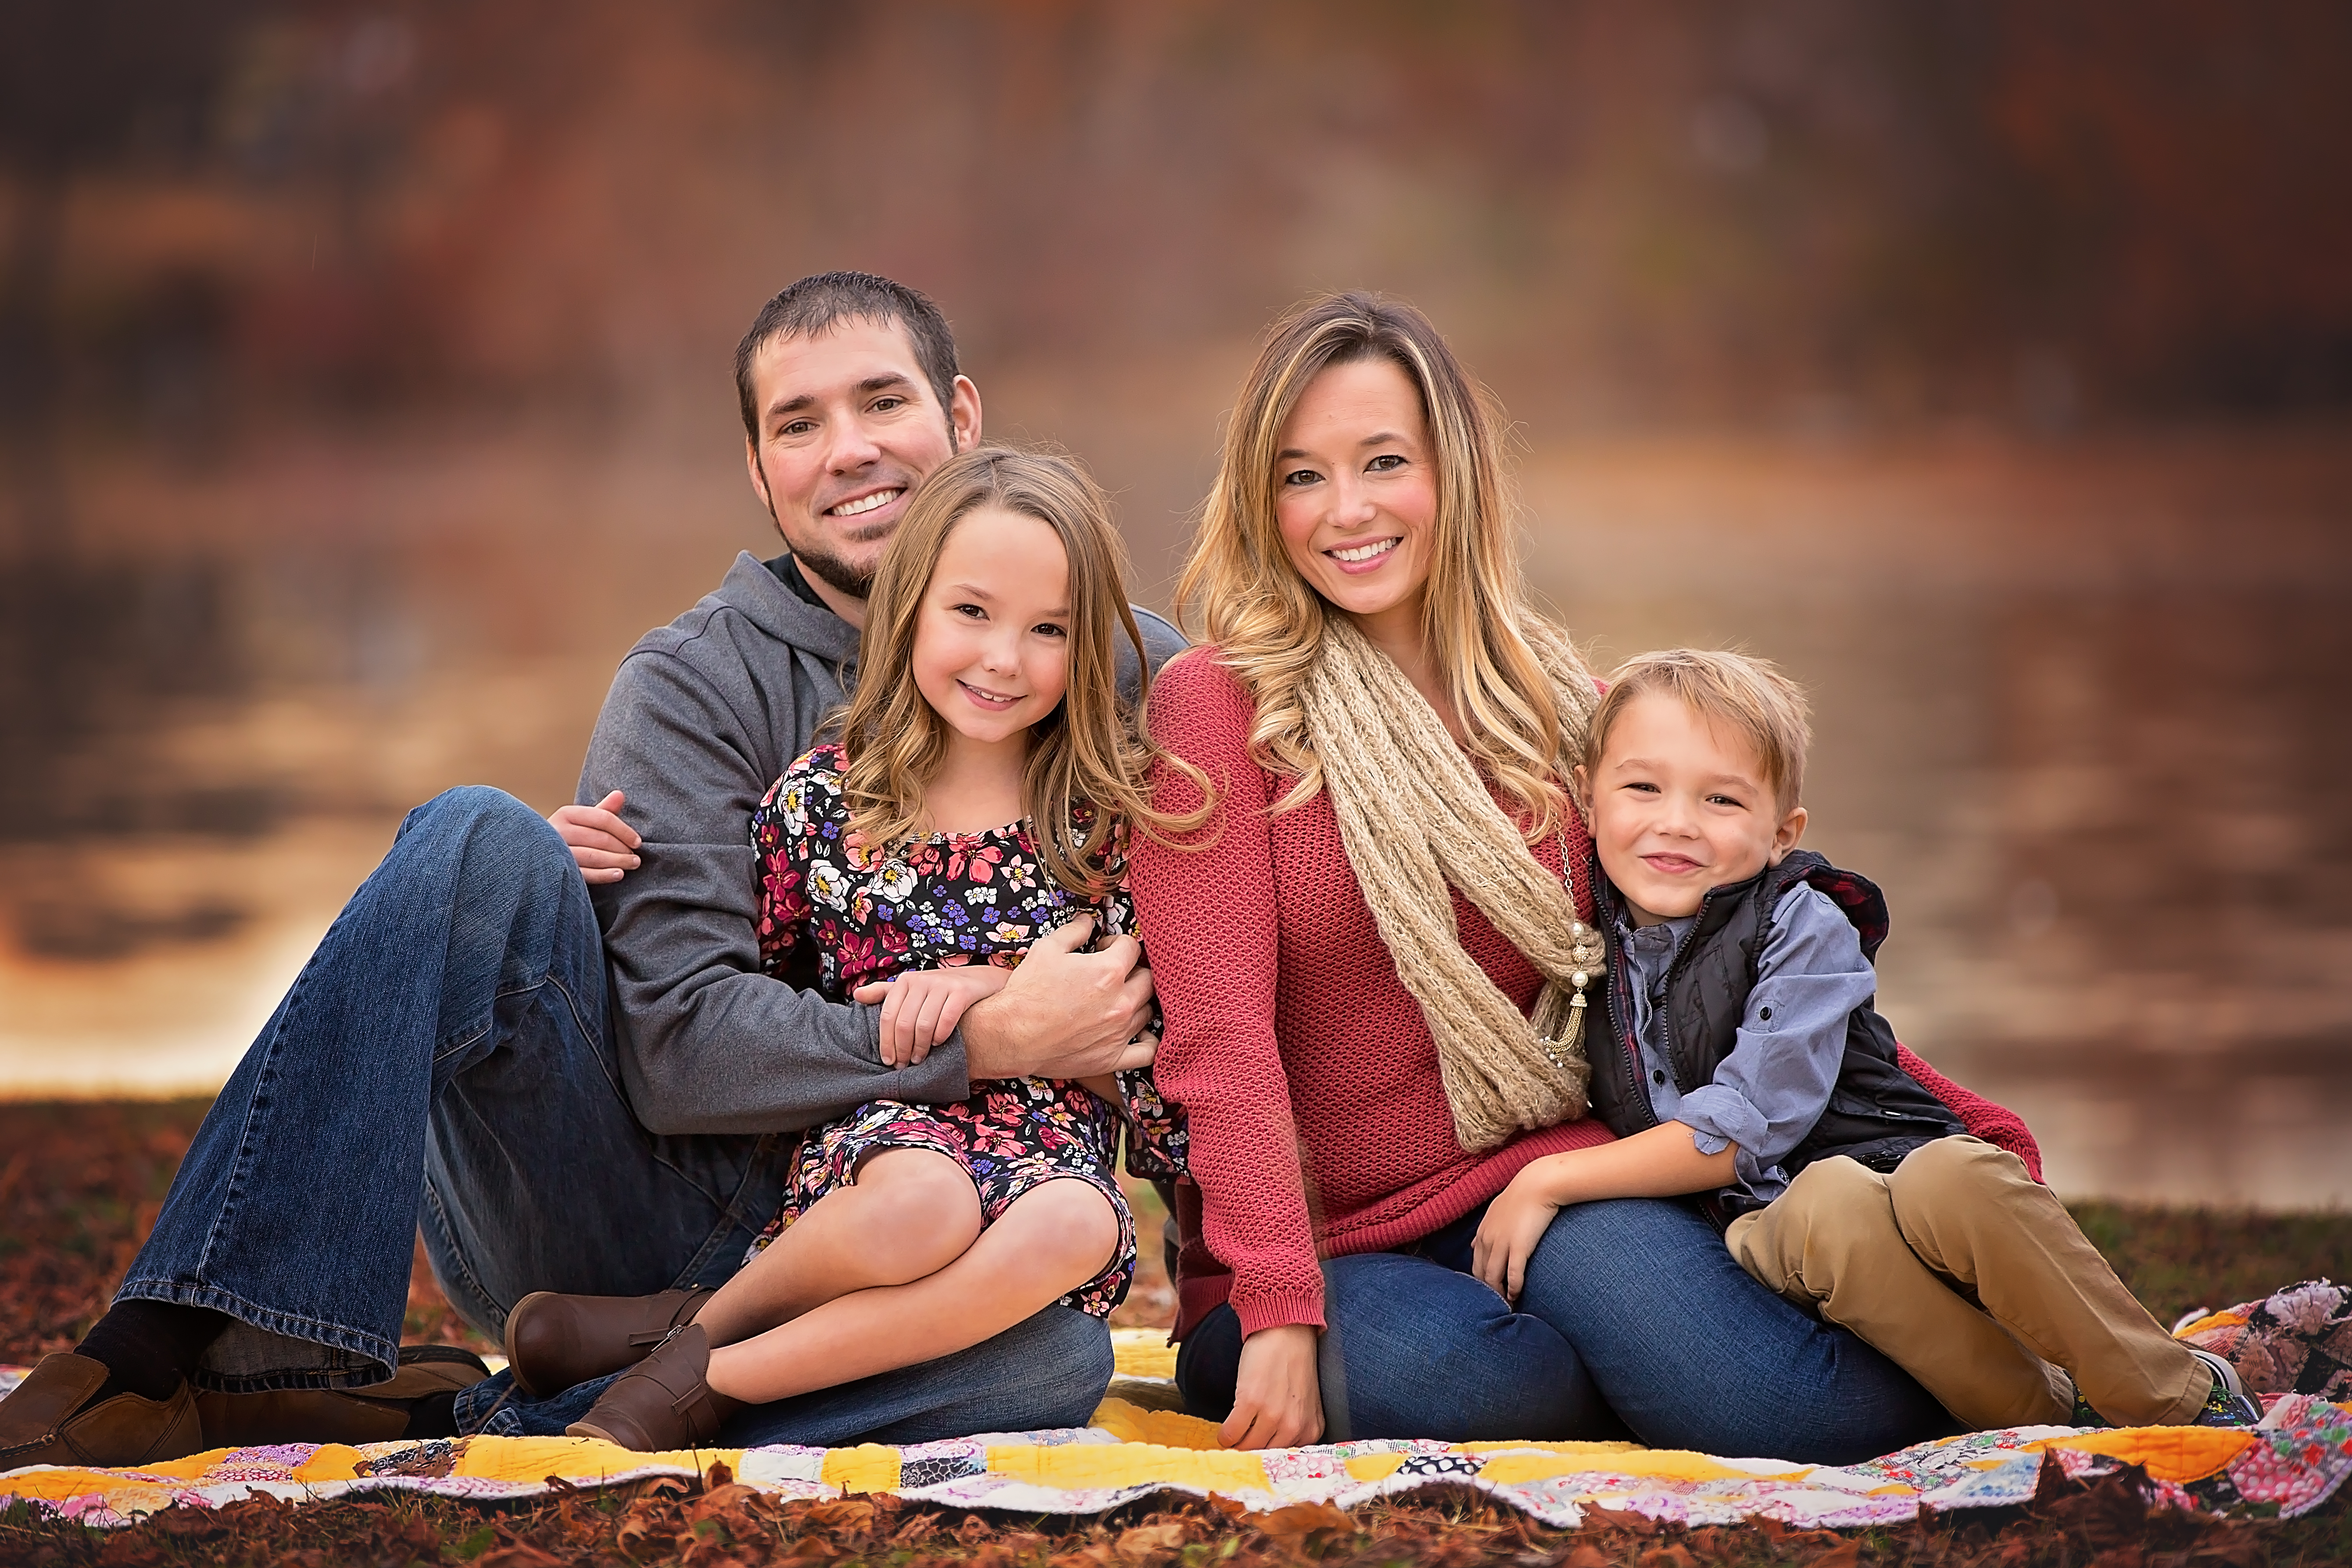 Rich and colorful family after photo